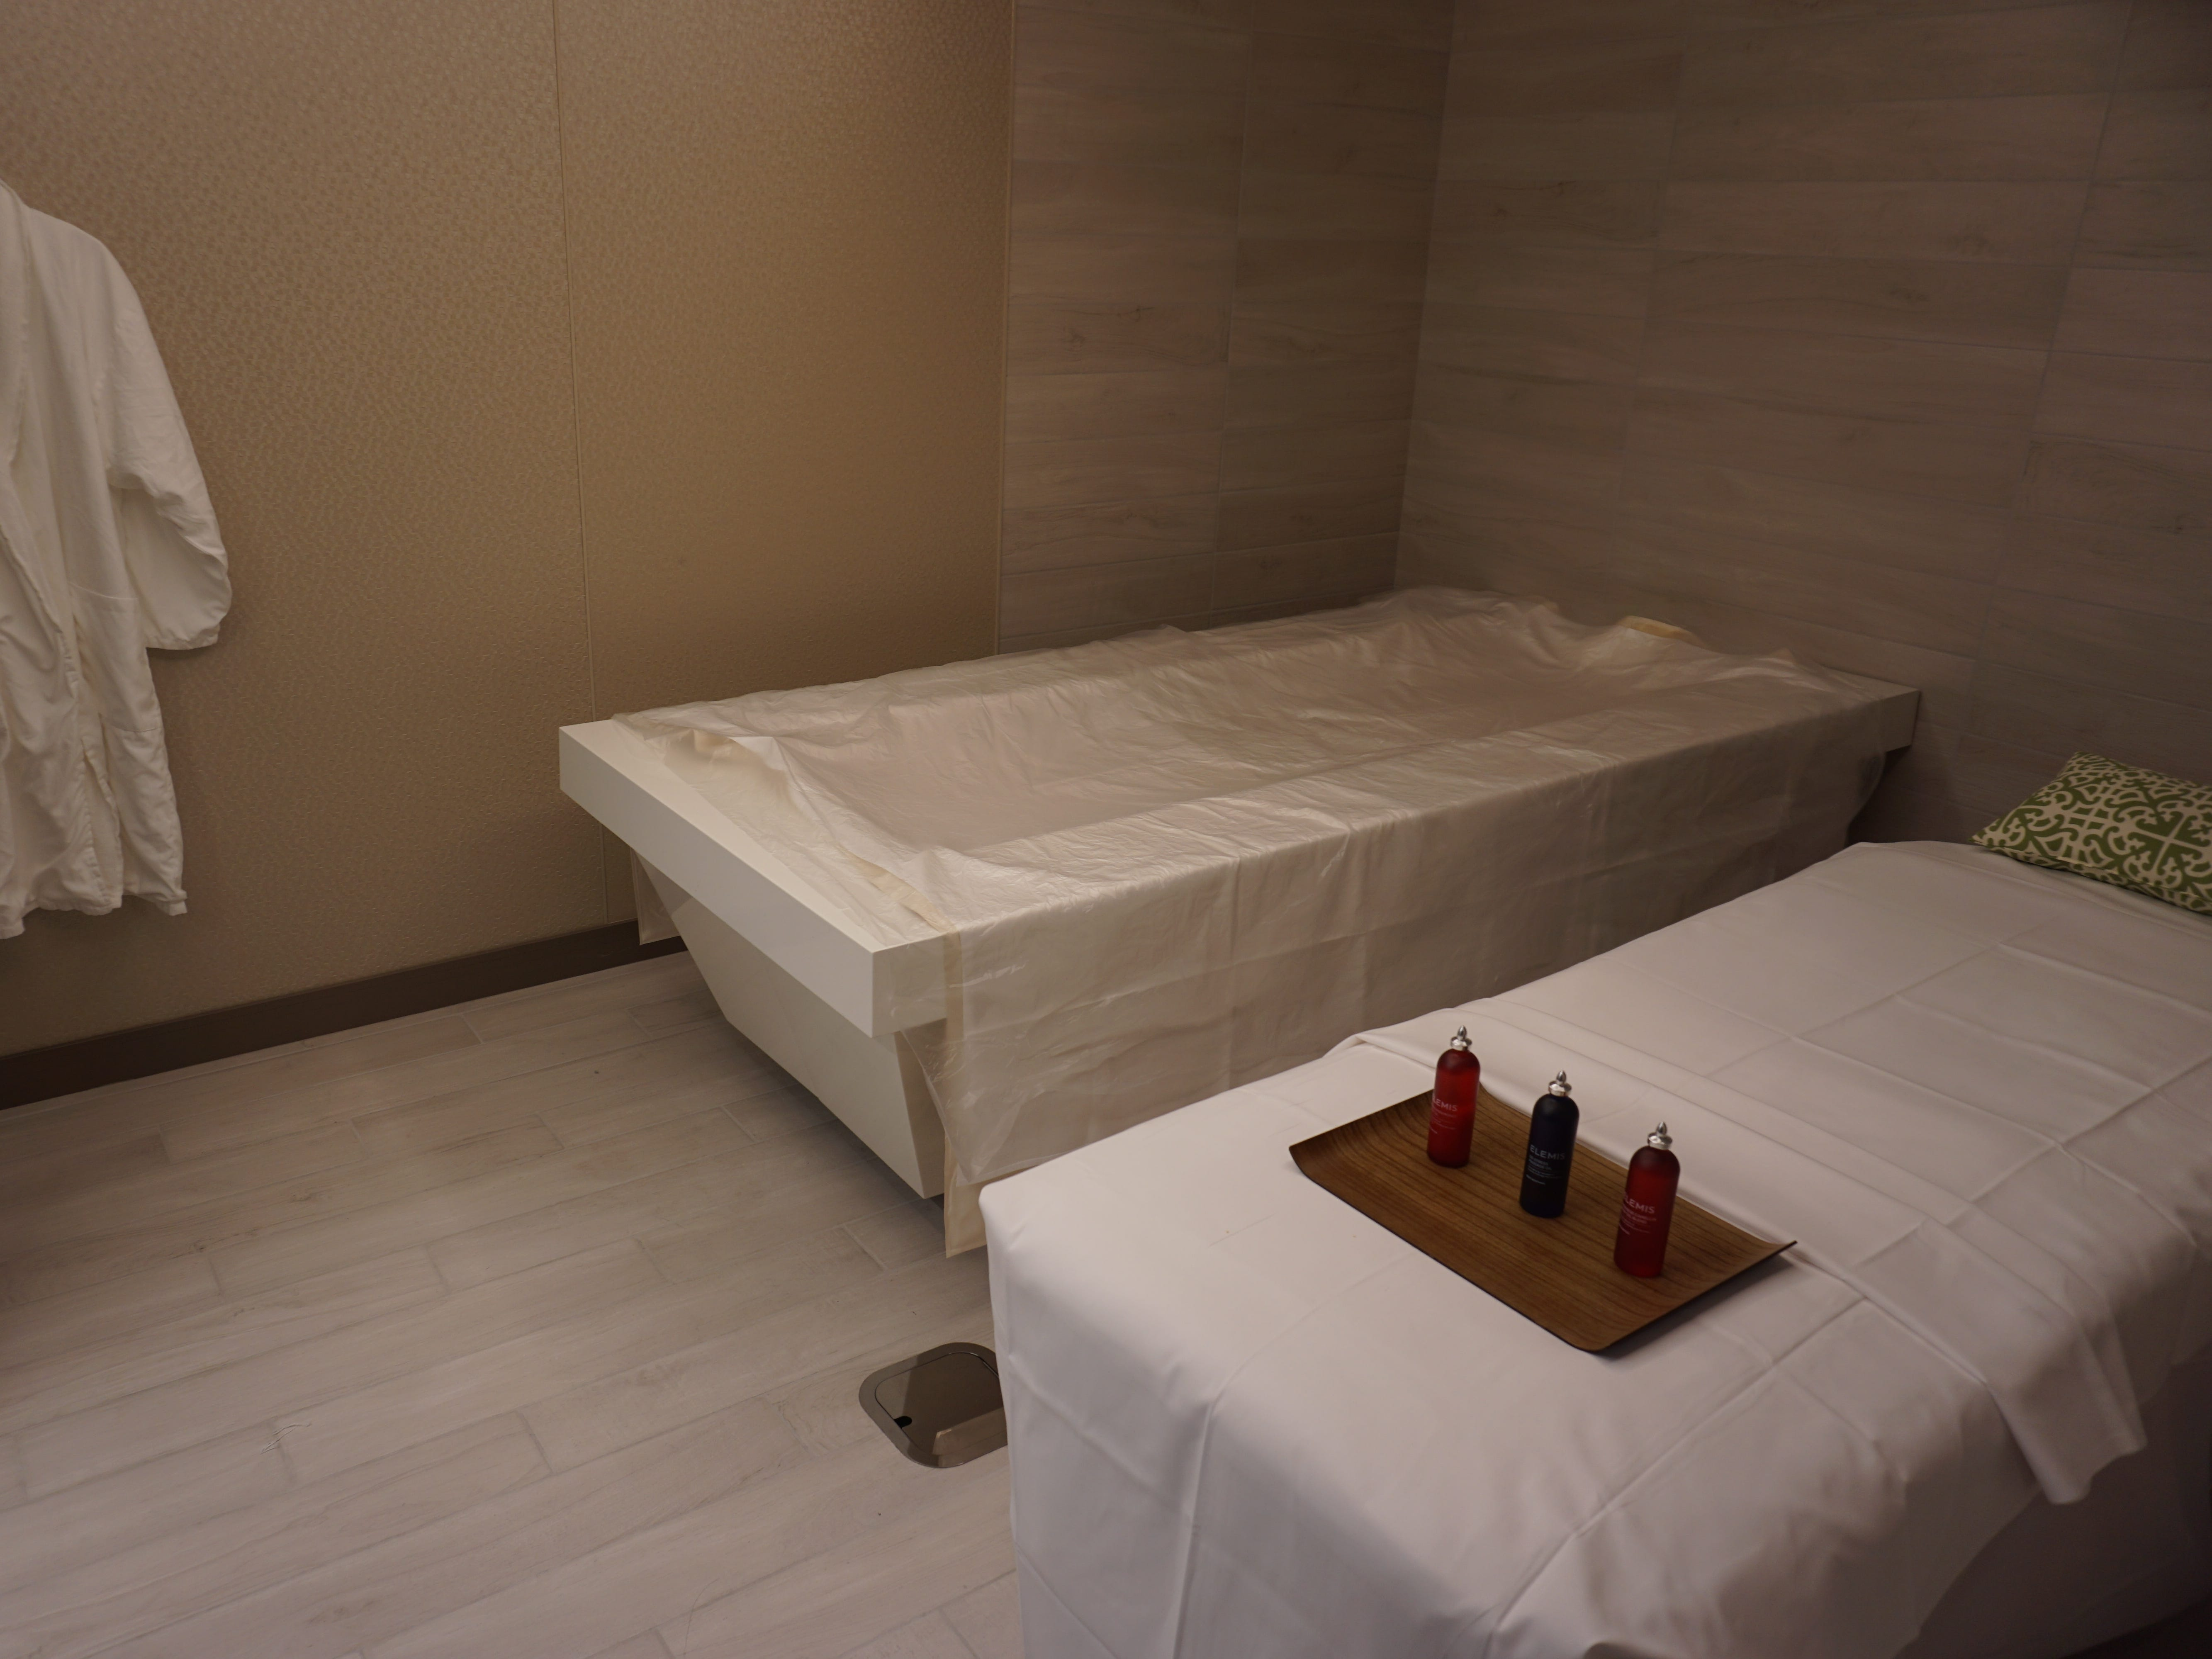 Among its varied private treatment rooms, the Greenhouse Spa has a Hydro and massage room for couples.